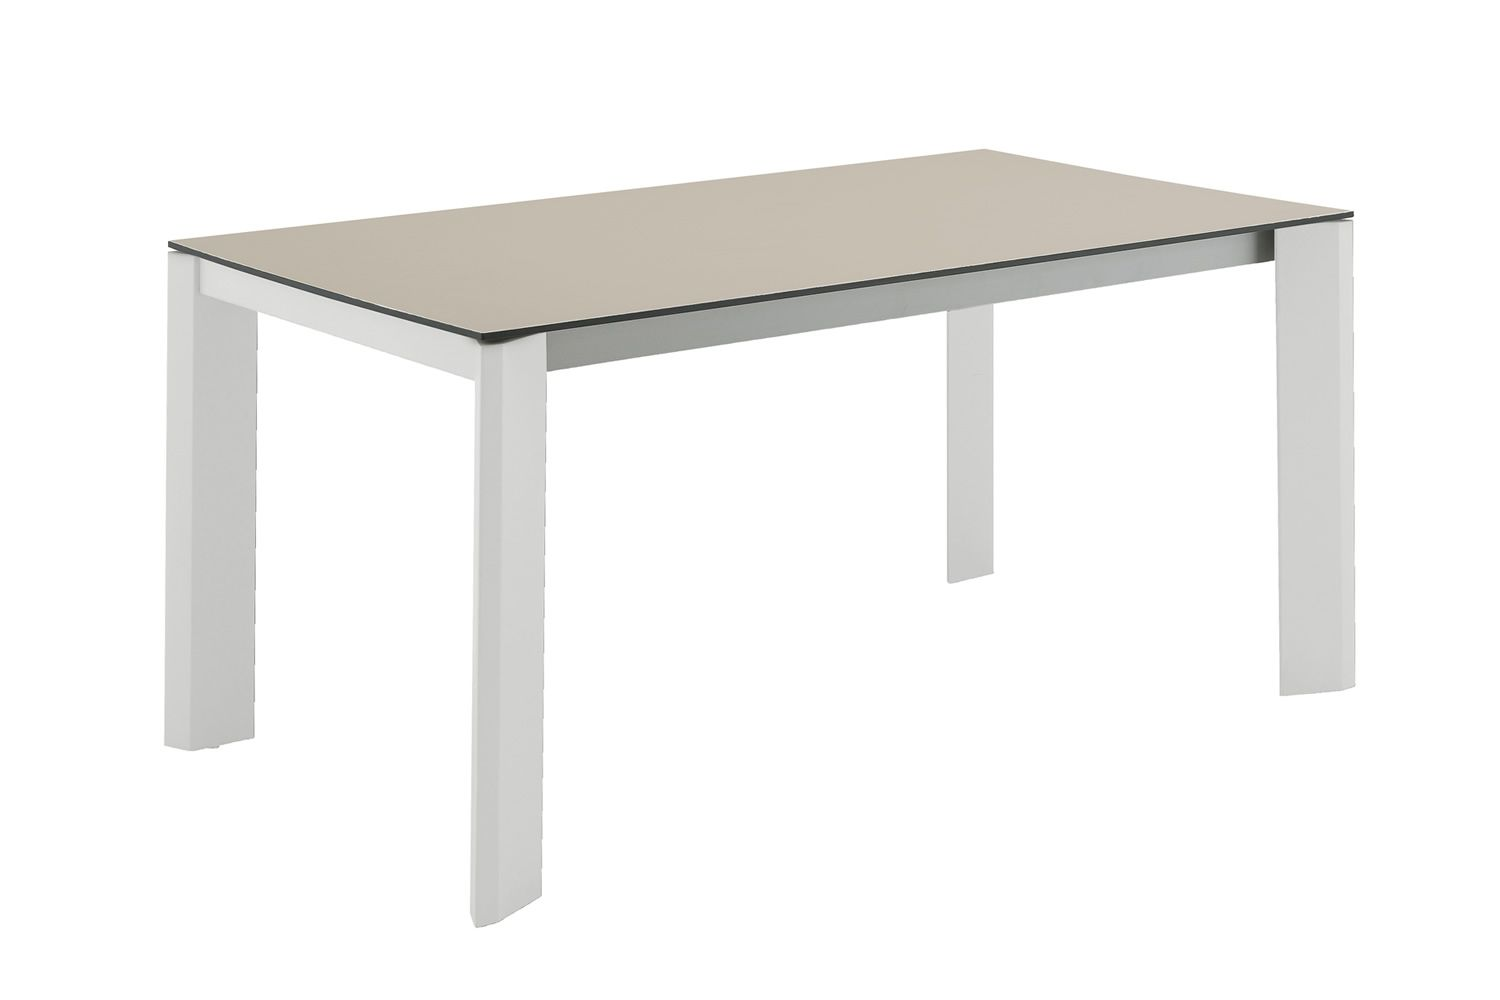 Neos 160 table domitalia en m tal plateau en verre ou for Table verre extensible